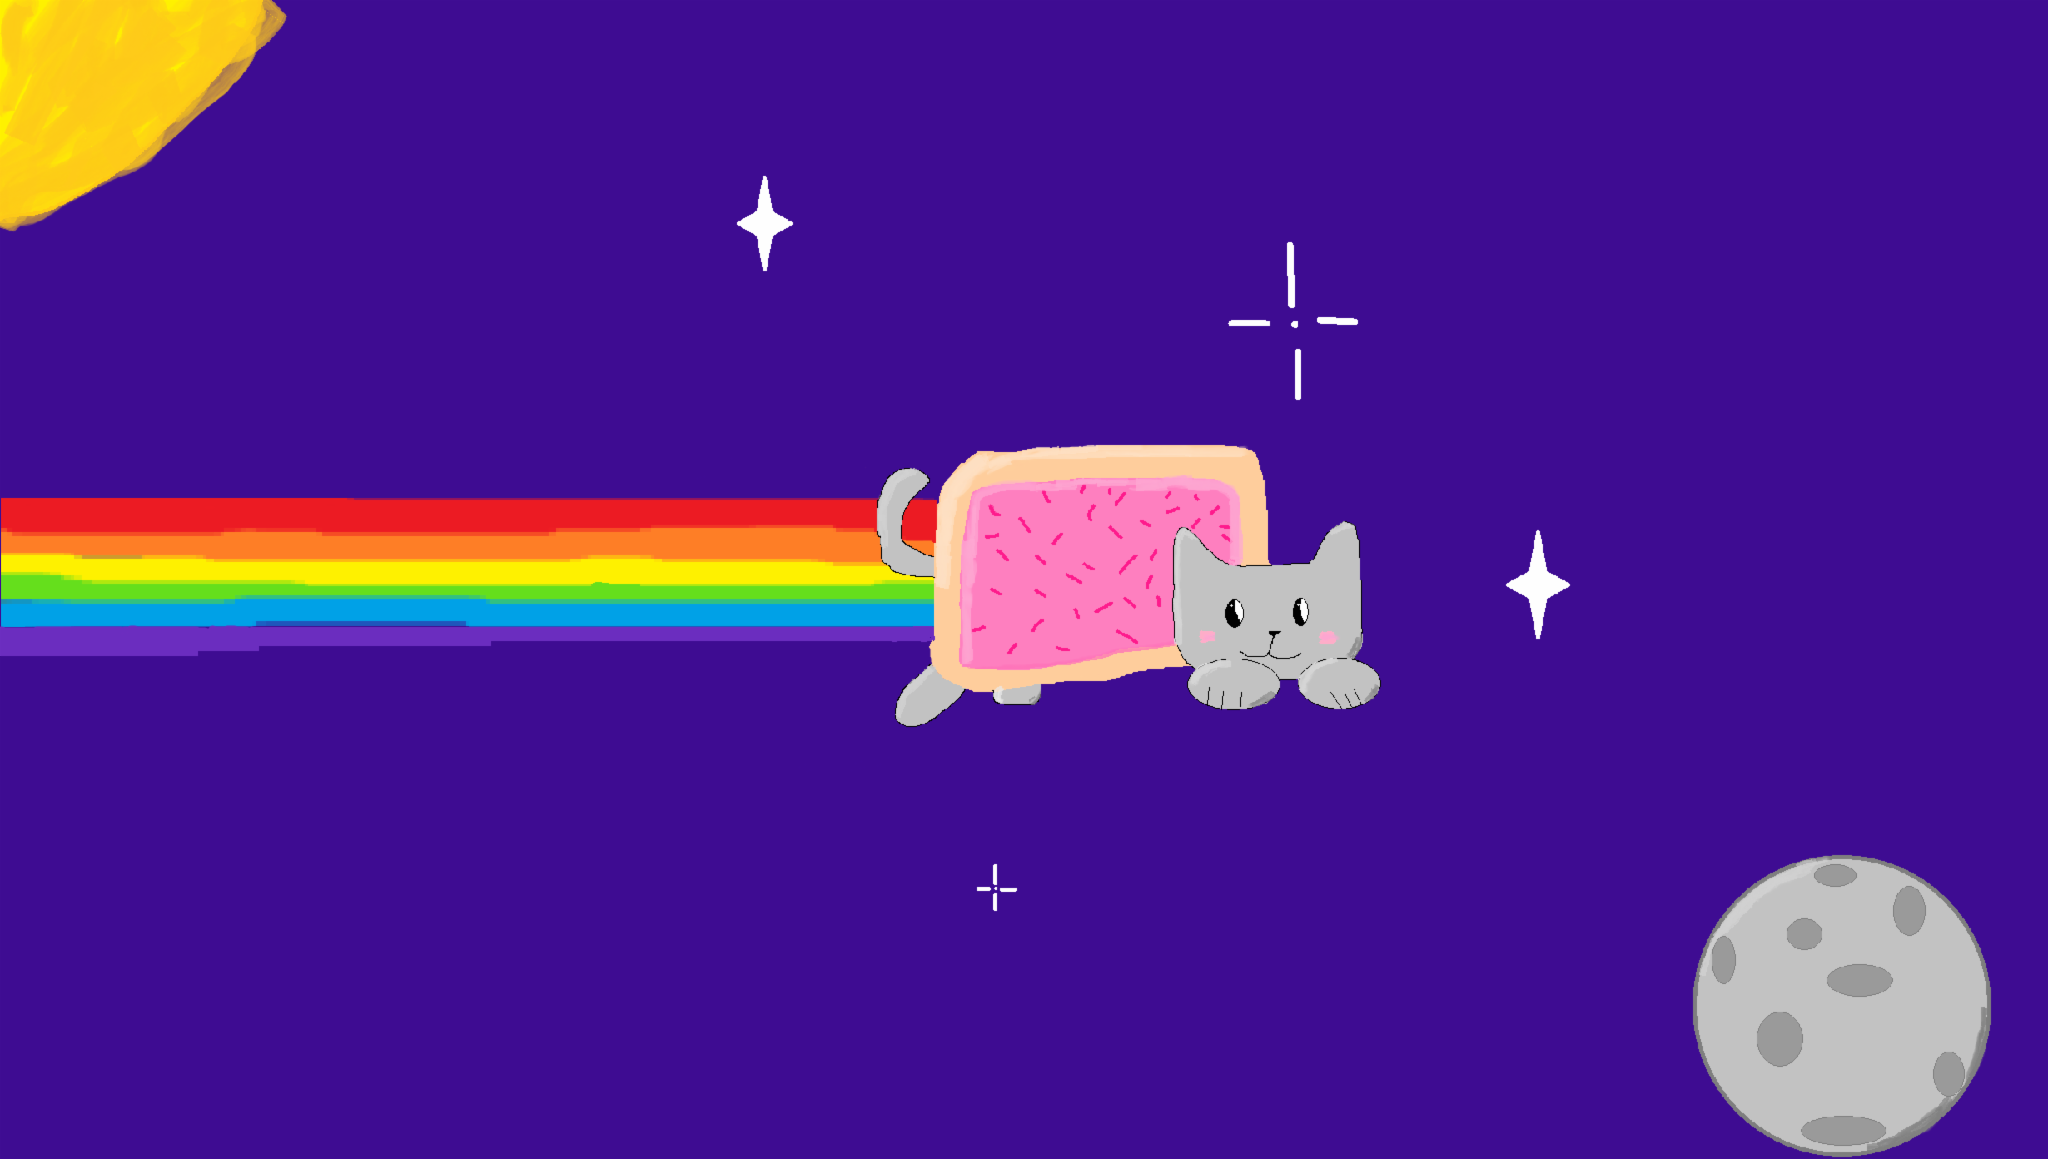 Nyan cat or Wolves?